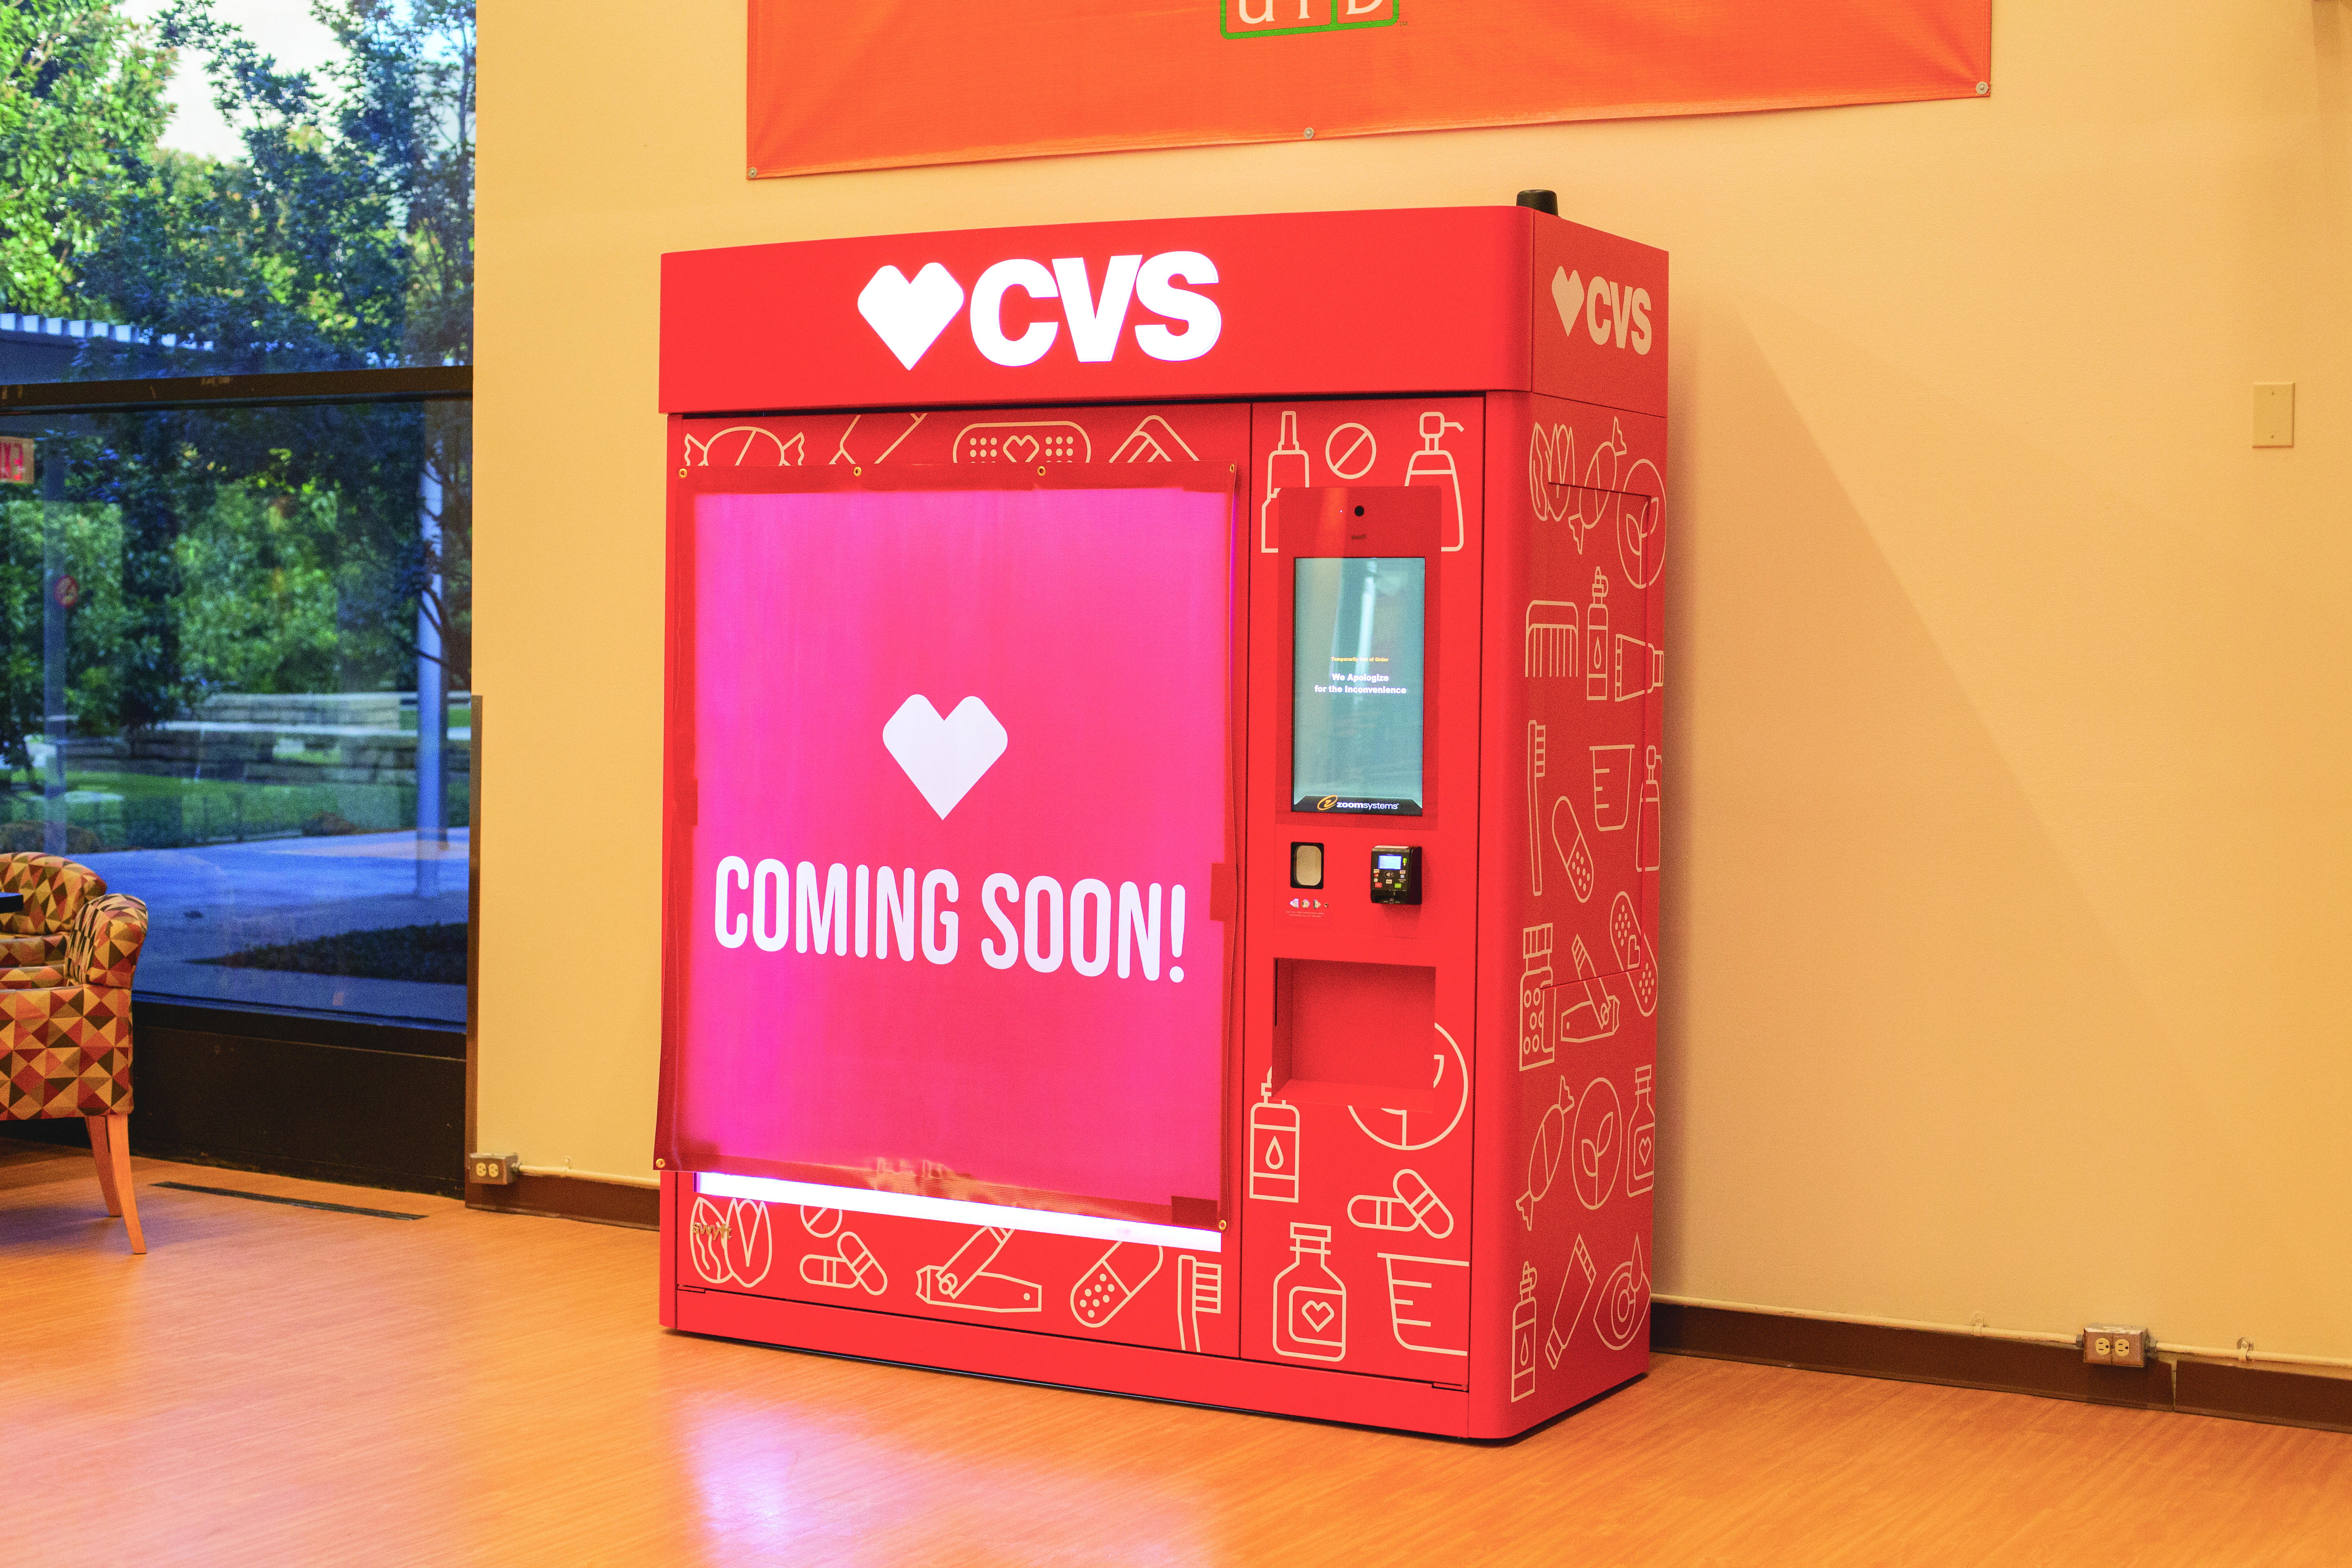 CVS Vending Machines to Open on Campus